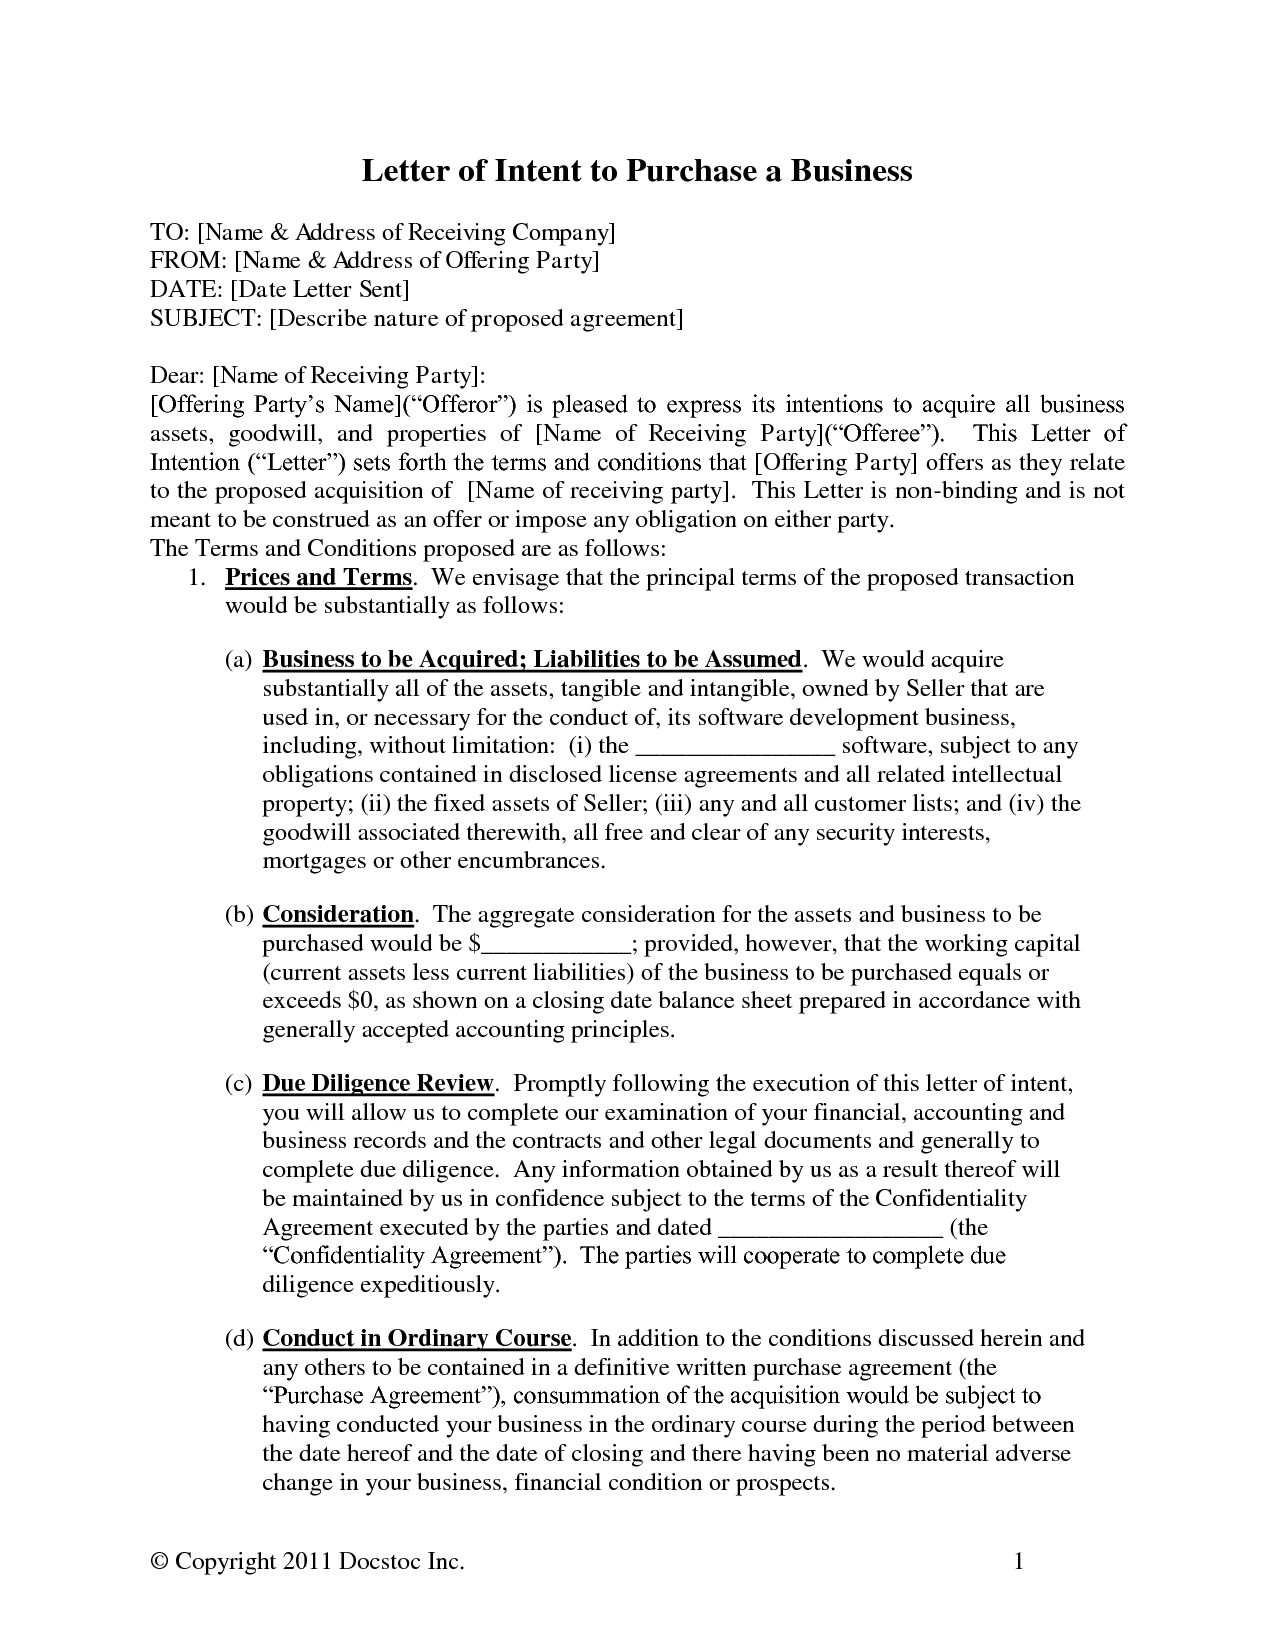 Letter Of Intent to Purchase Business Template - Acquisition Business Letters